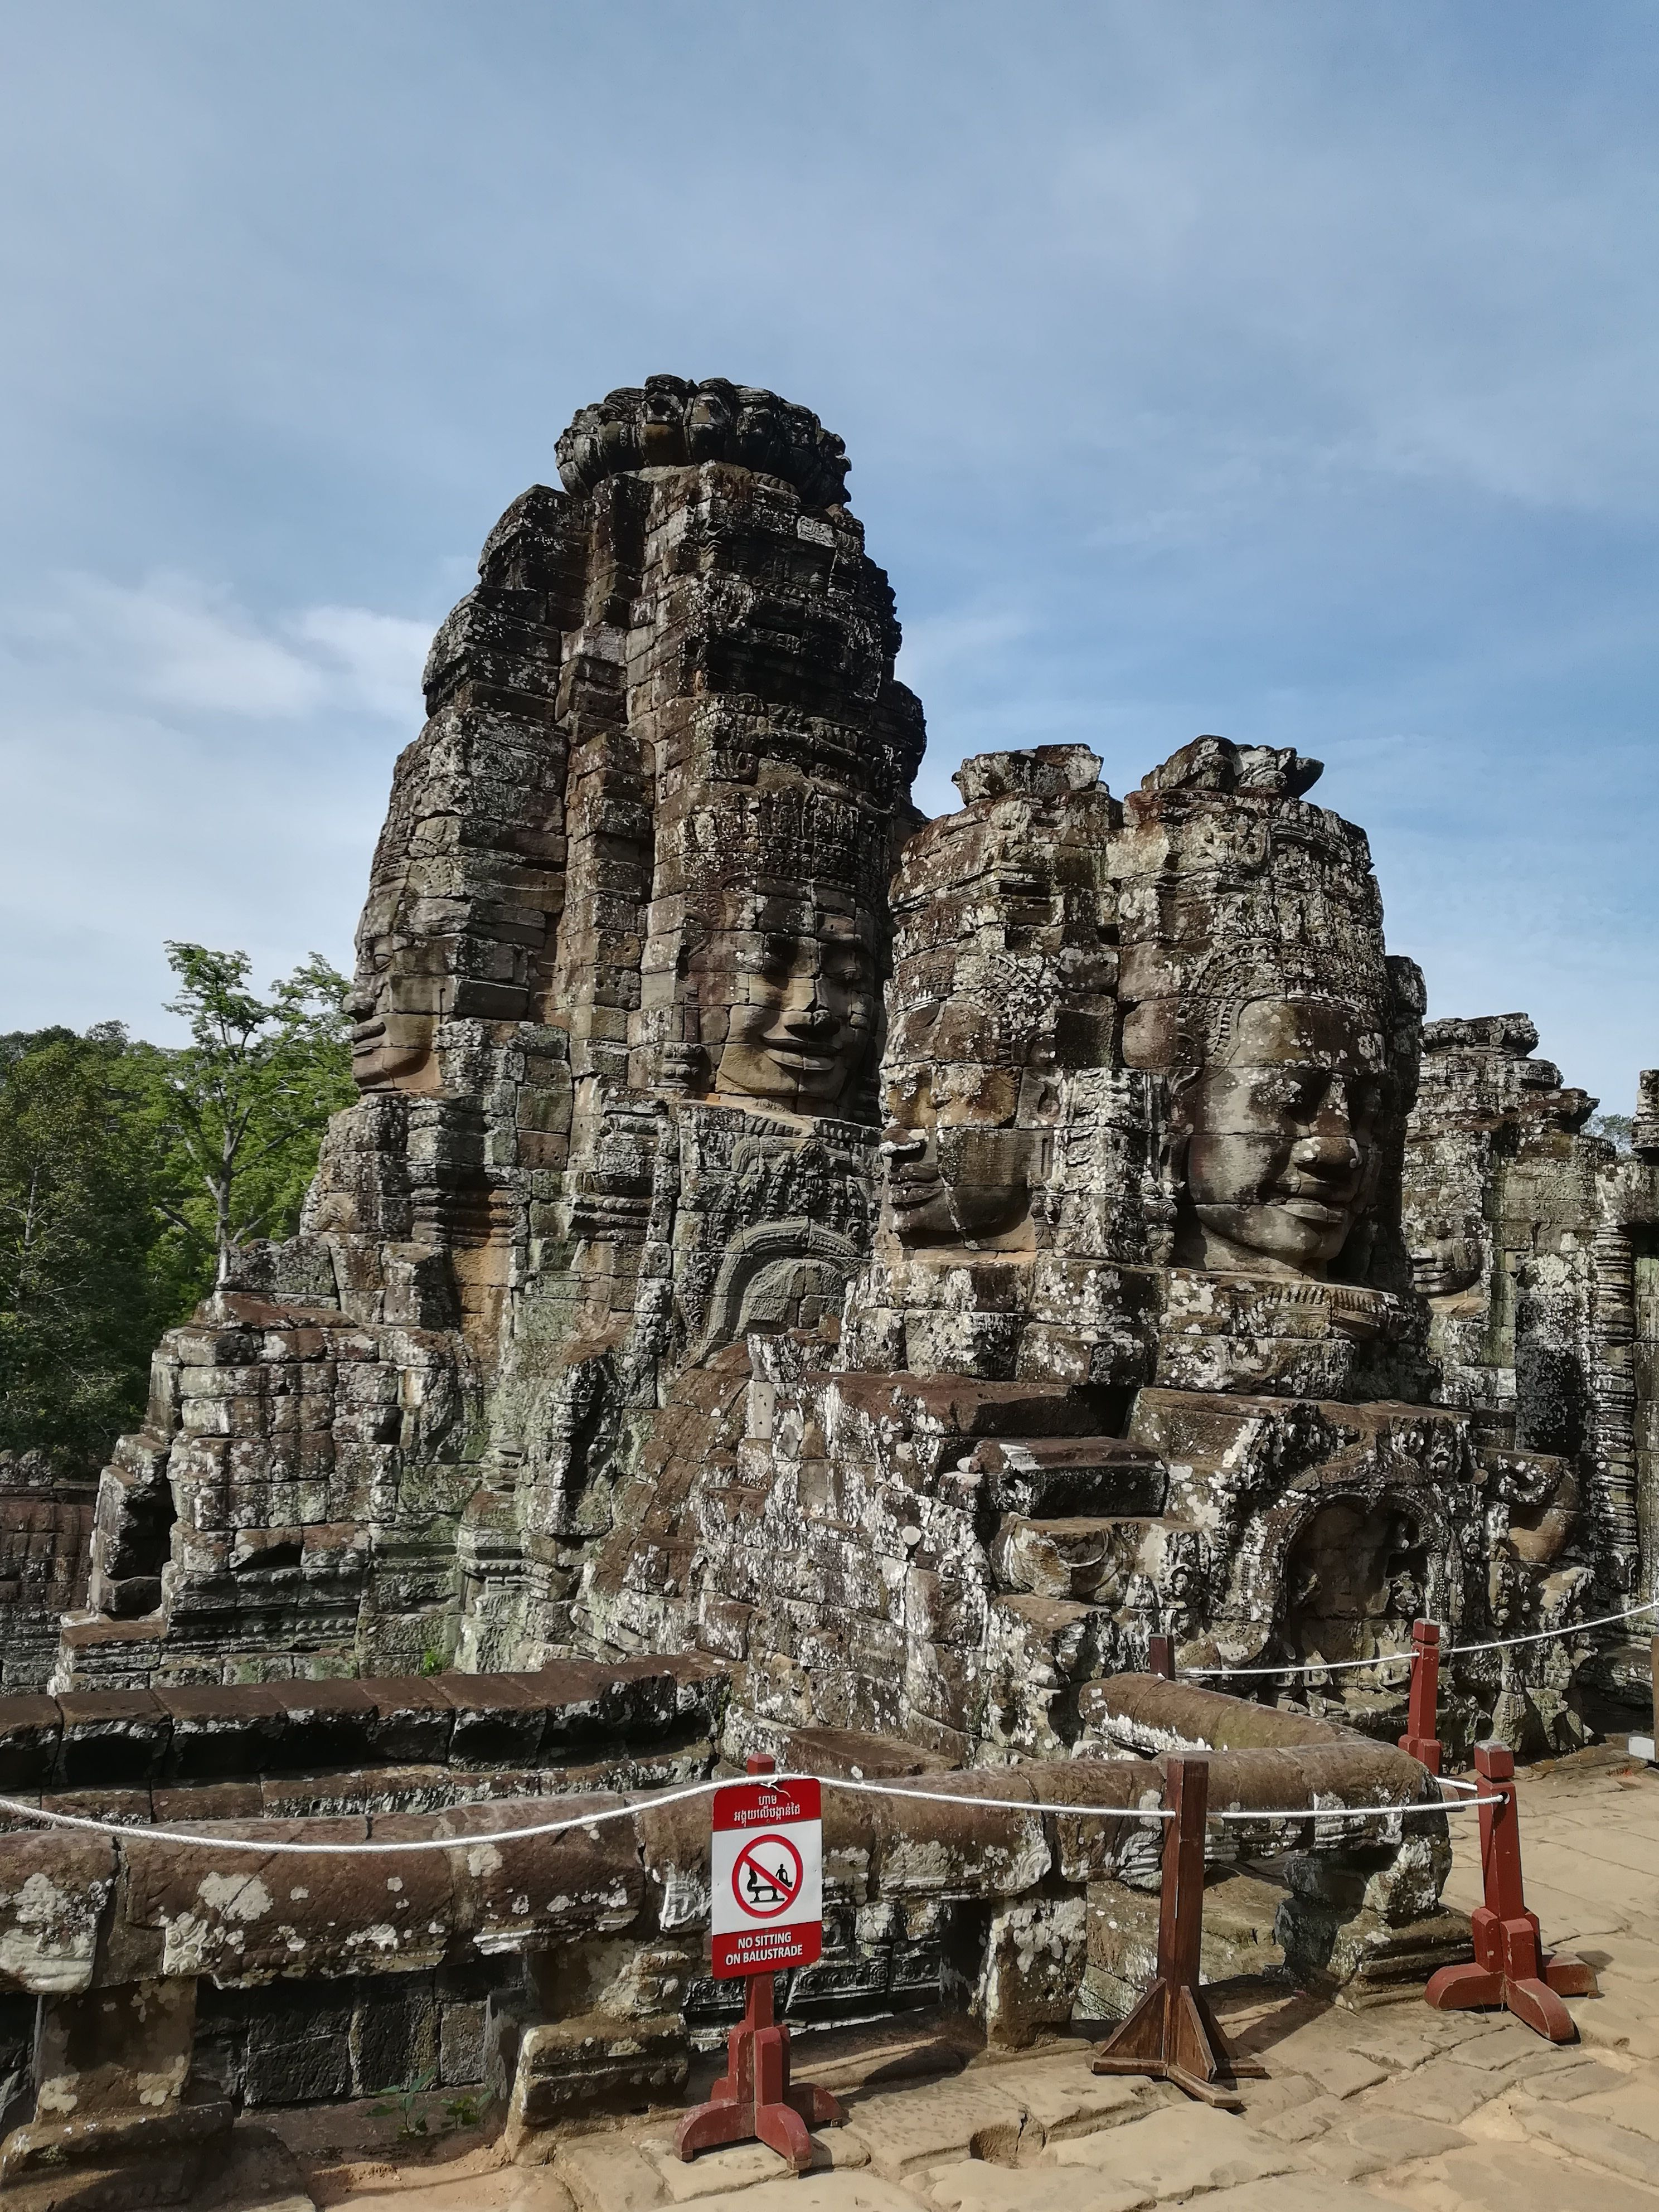 How to do Angkor Wat Temple tour? How much are the ticket for Angkor Wat Temple? How to get to Angkor Wat Temple from Siem Reap City #siemreap #angkorwat #cambodia #asia #travel #blog #travelblog #mywonderfultrips